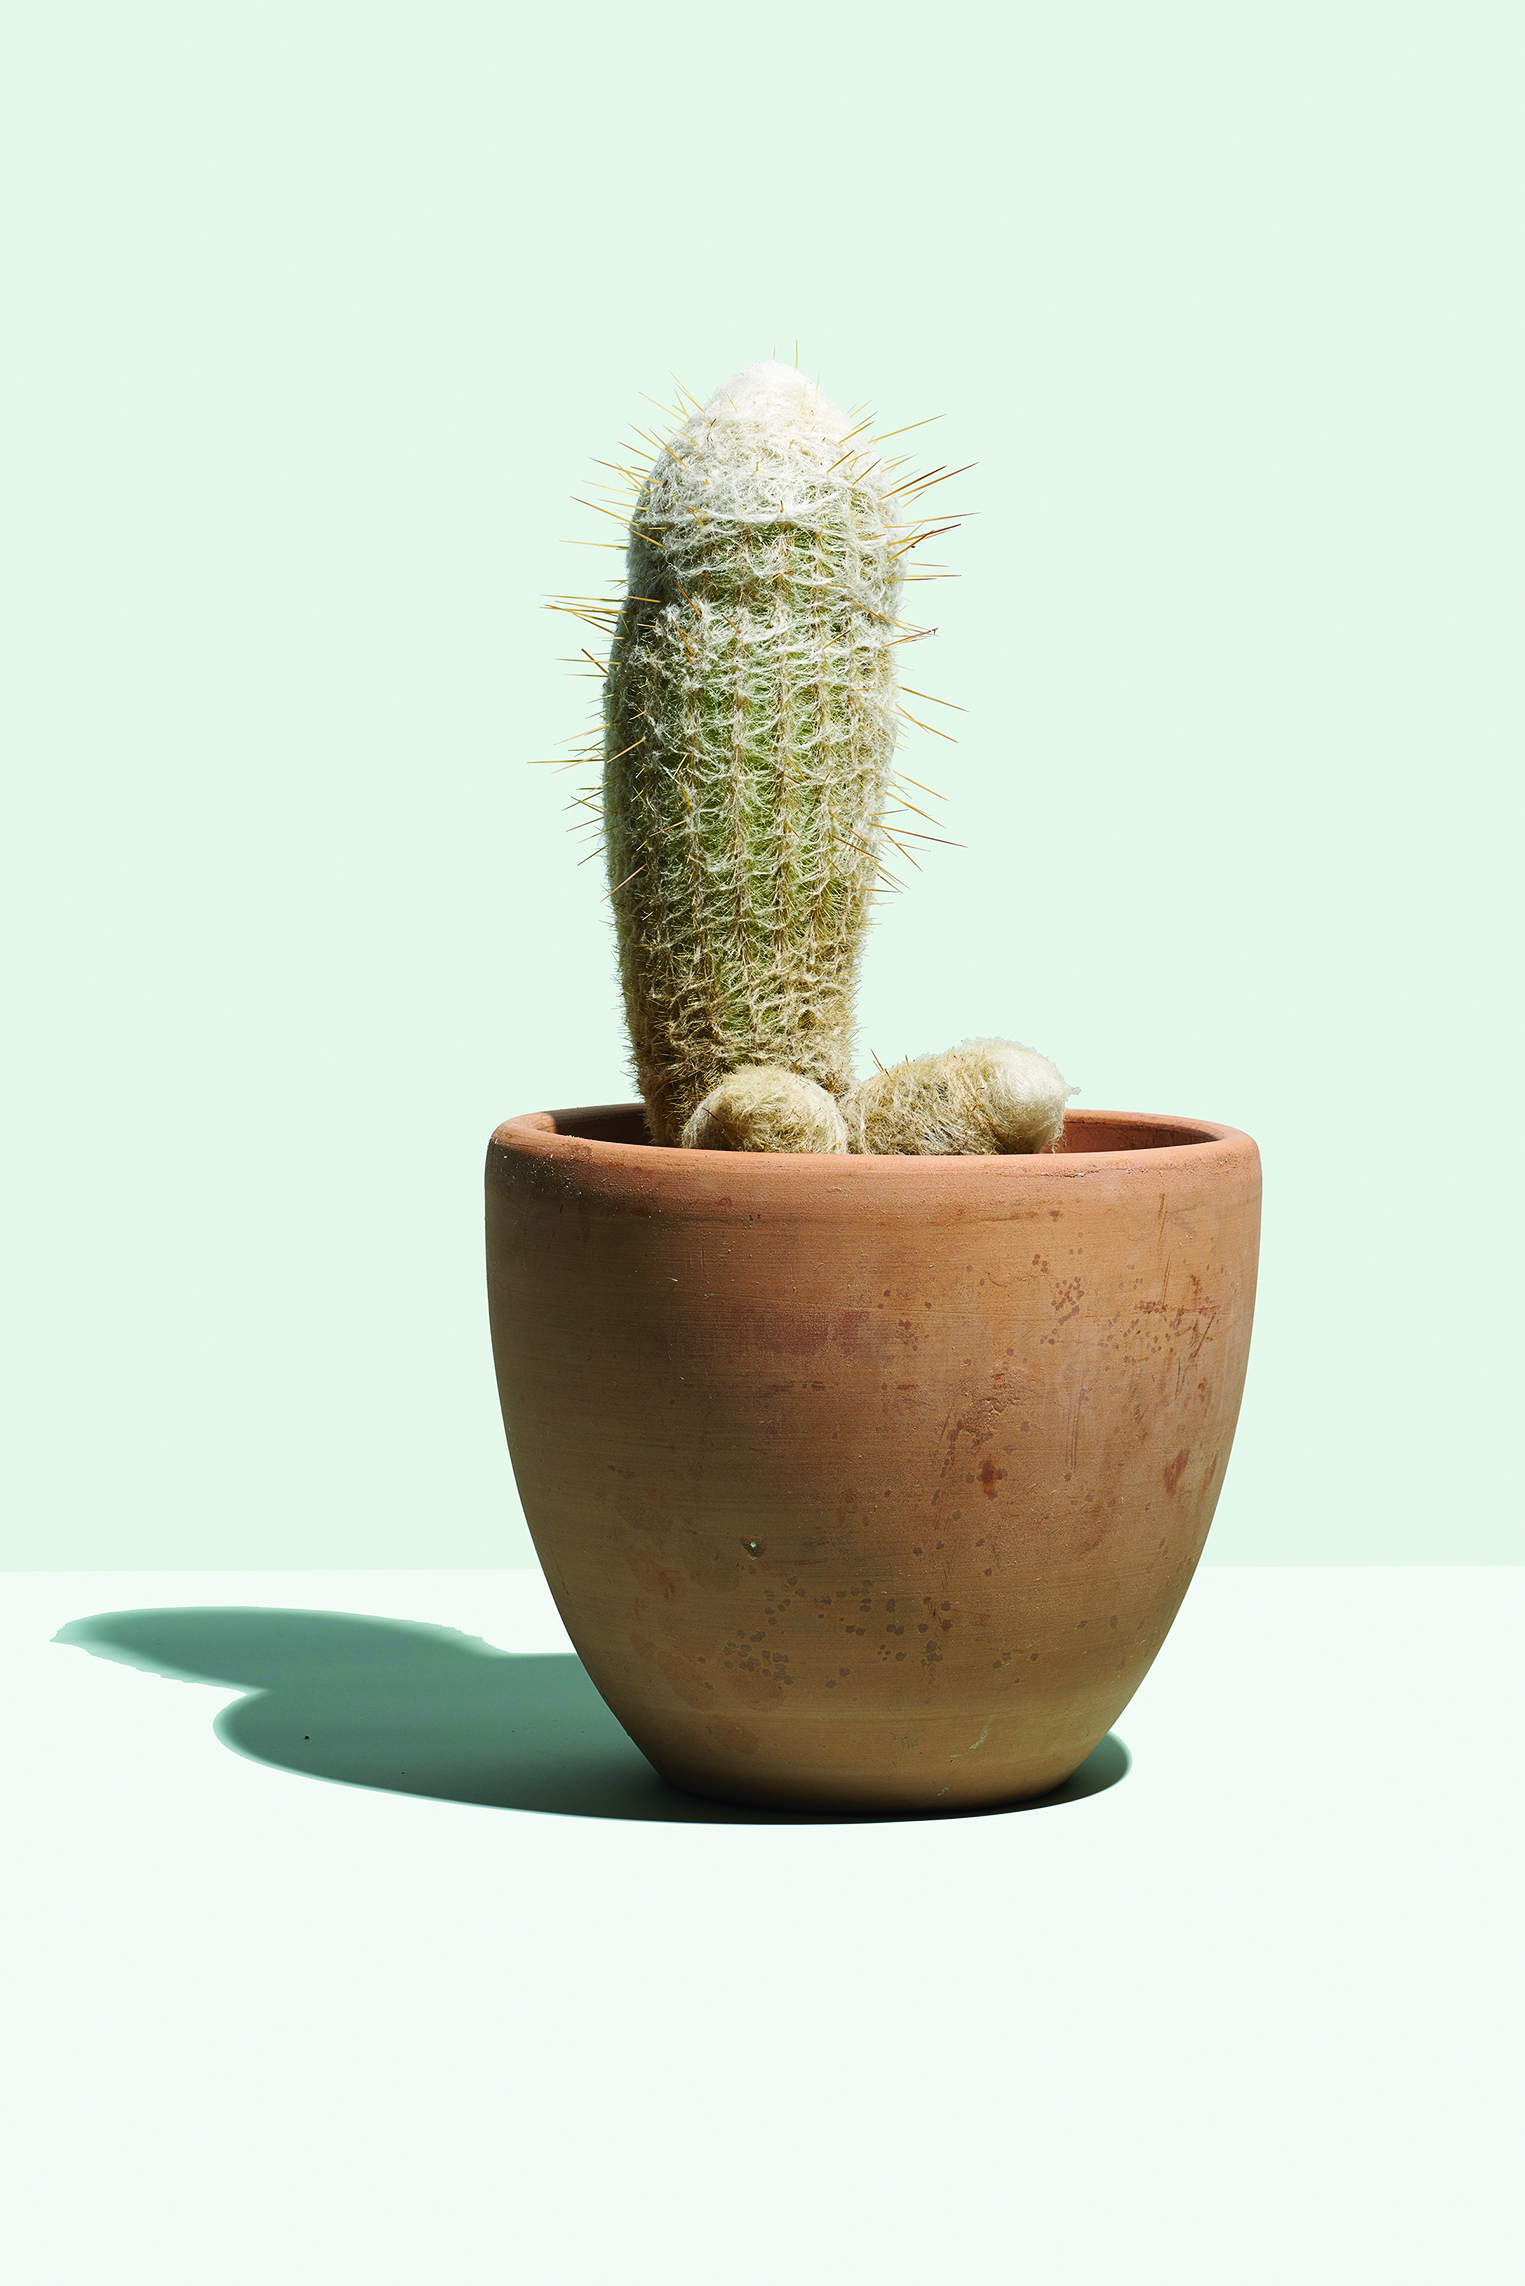 photo of a cactus used in the Hims ad campaign